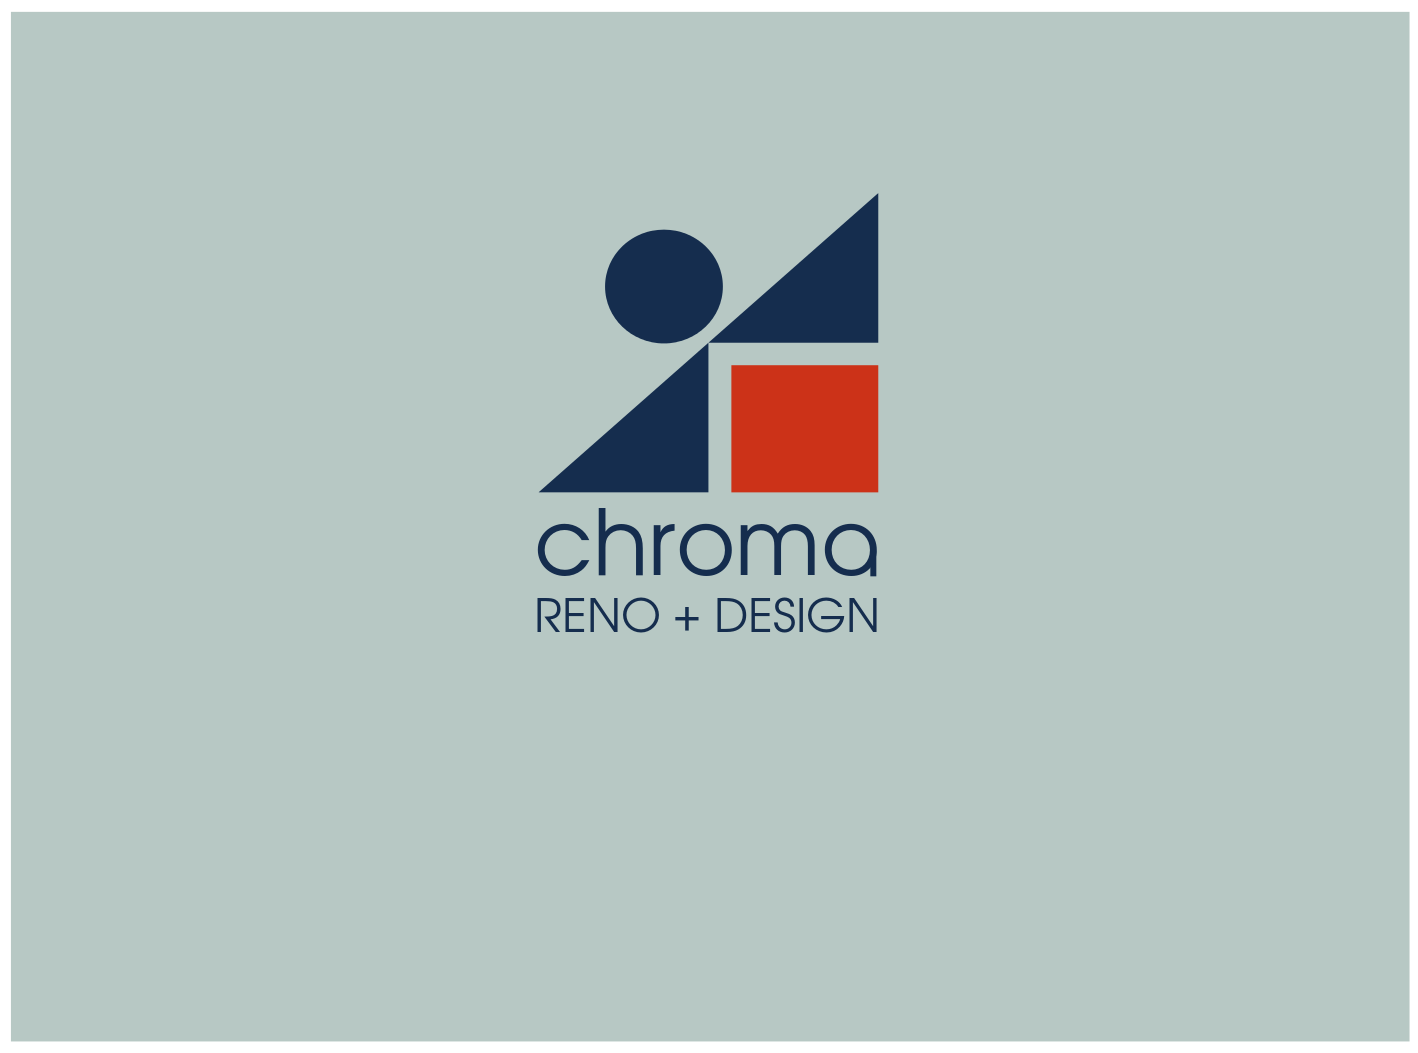 Logo Design by JaroslavProcka - Entry No. 326 in the Logo Design Contest Inspiring Logo Design for Chroma Reno+Design.